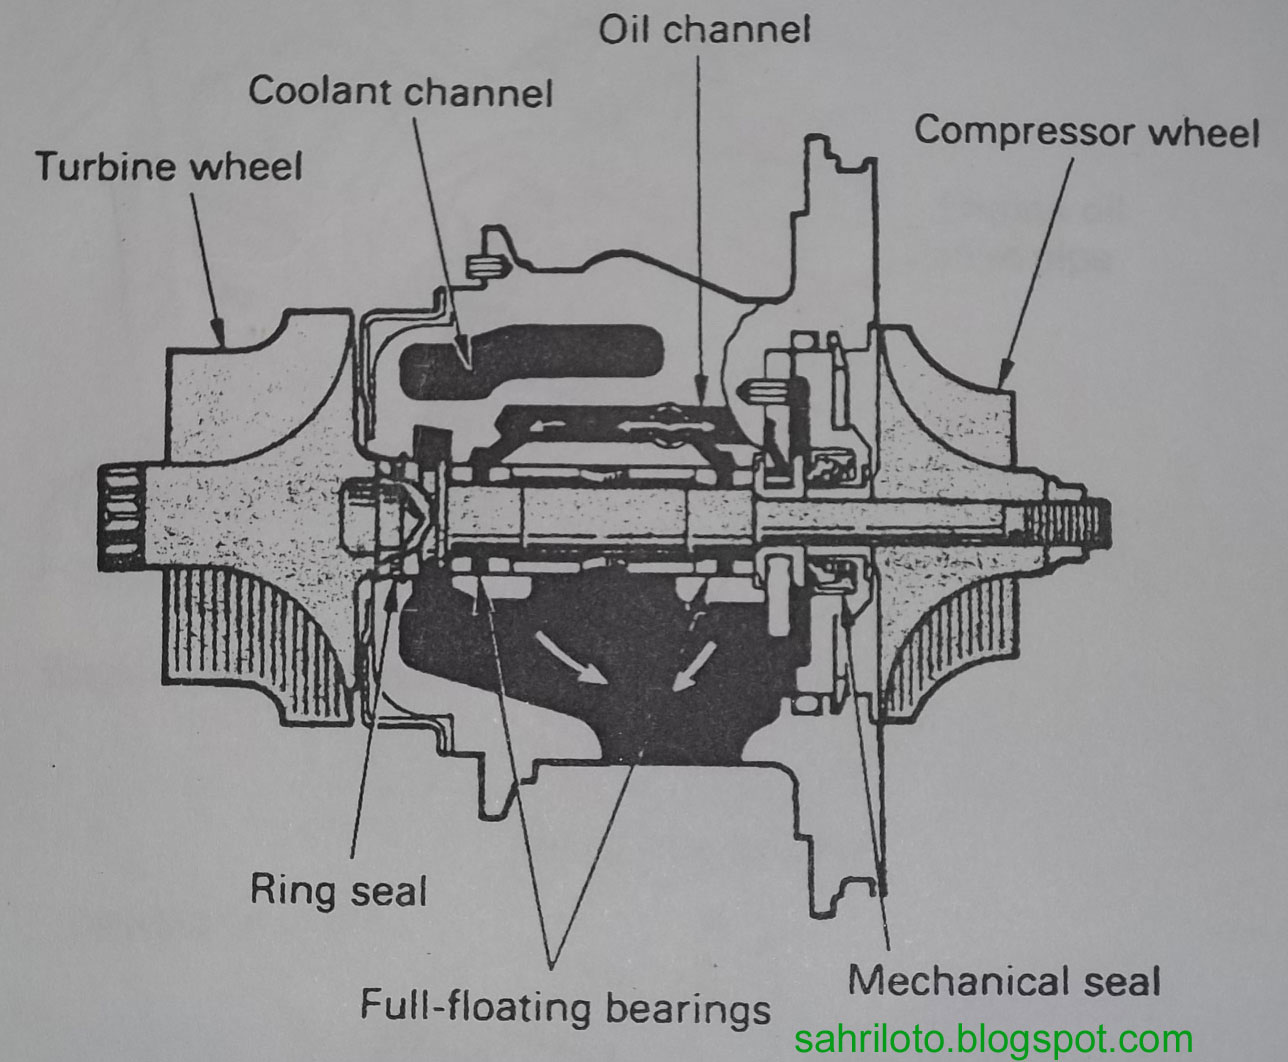 full floating bearing selama turbine dan compresswor wheel berputar